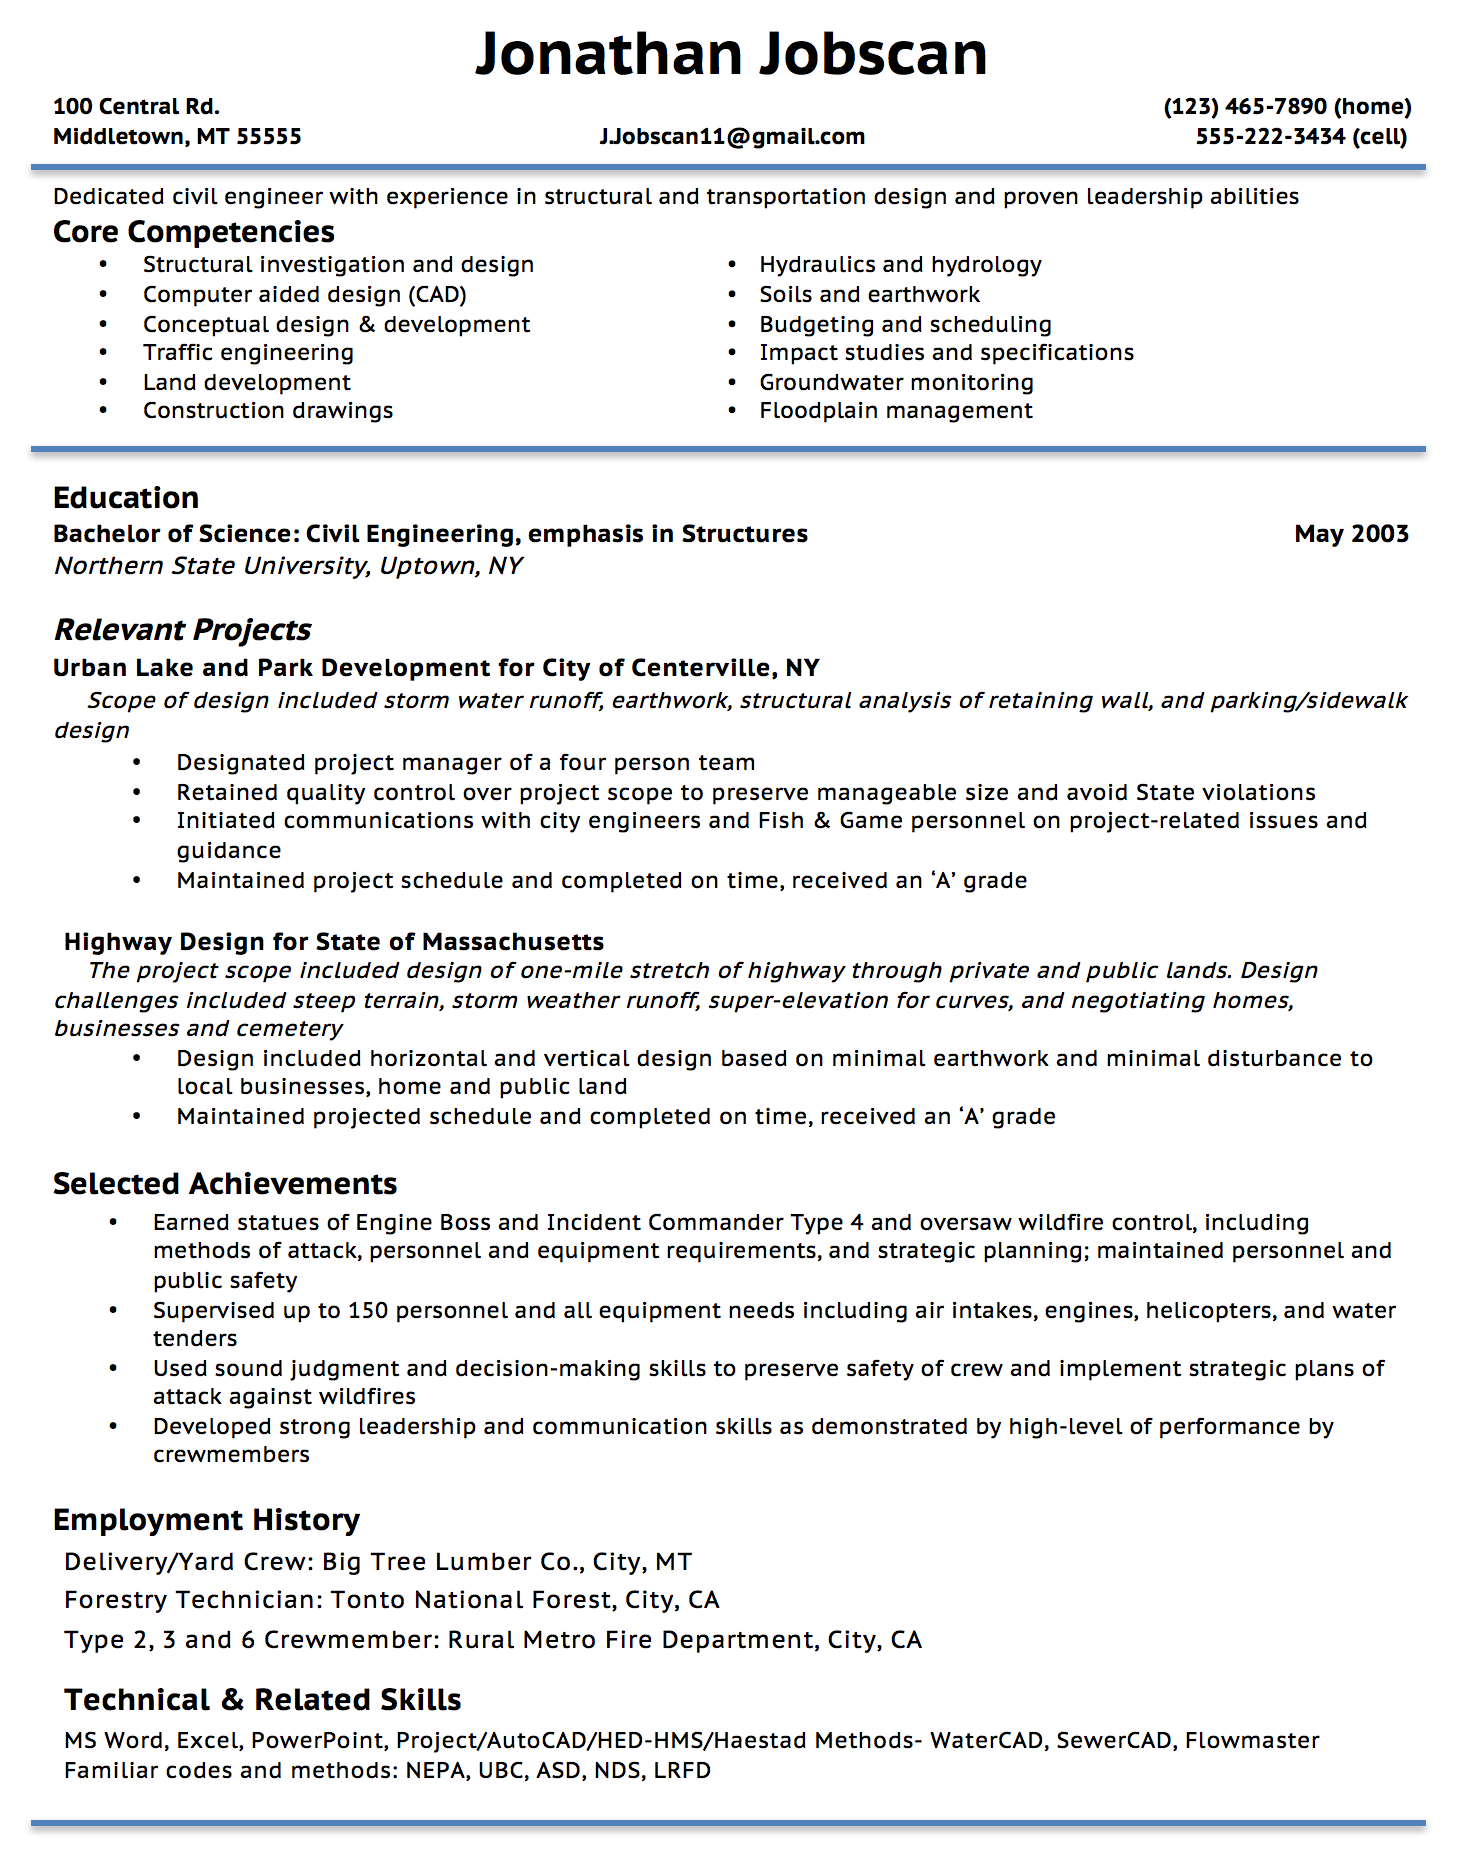 Opposenewapstandardsus  Inspiring Resume Writing Guide  Jobscan With Fetching Example Of A Functional Resume Format With Alluring Resume Builder For College Students Also Resume For Nurse In Addition Do A Resume And Elementary Teacher Resume Template As Well As High School Student Resume Templates No Work Experience Additionally Office Depot Resume Paper From Jobscanco With Opposenewapstandardsus  Fetching Resume Writing Guide  Jobscan With Alluring Example Of A Functional Resume Format And Inspiring Resume Builder For College Students Also Resume For Nurse In Addition Do A Resume From Jobscanco